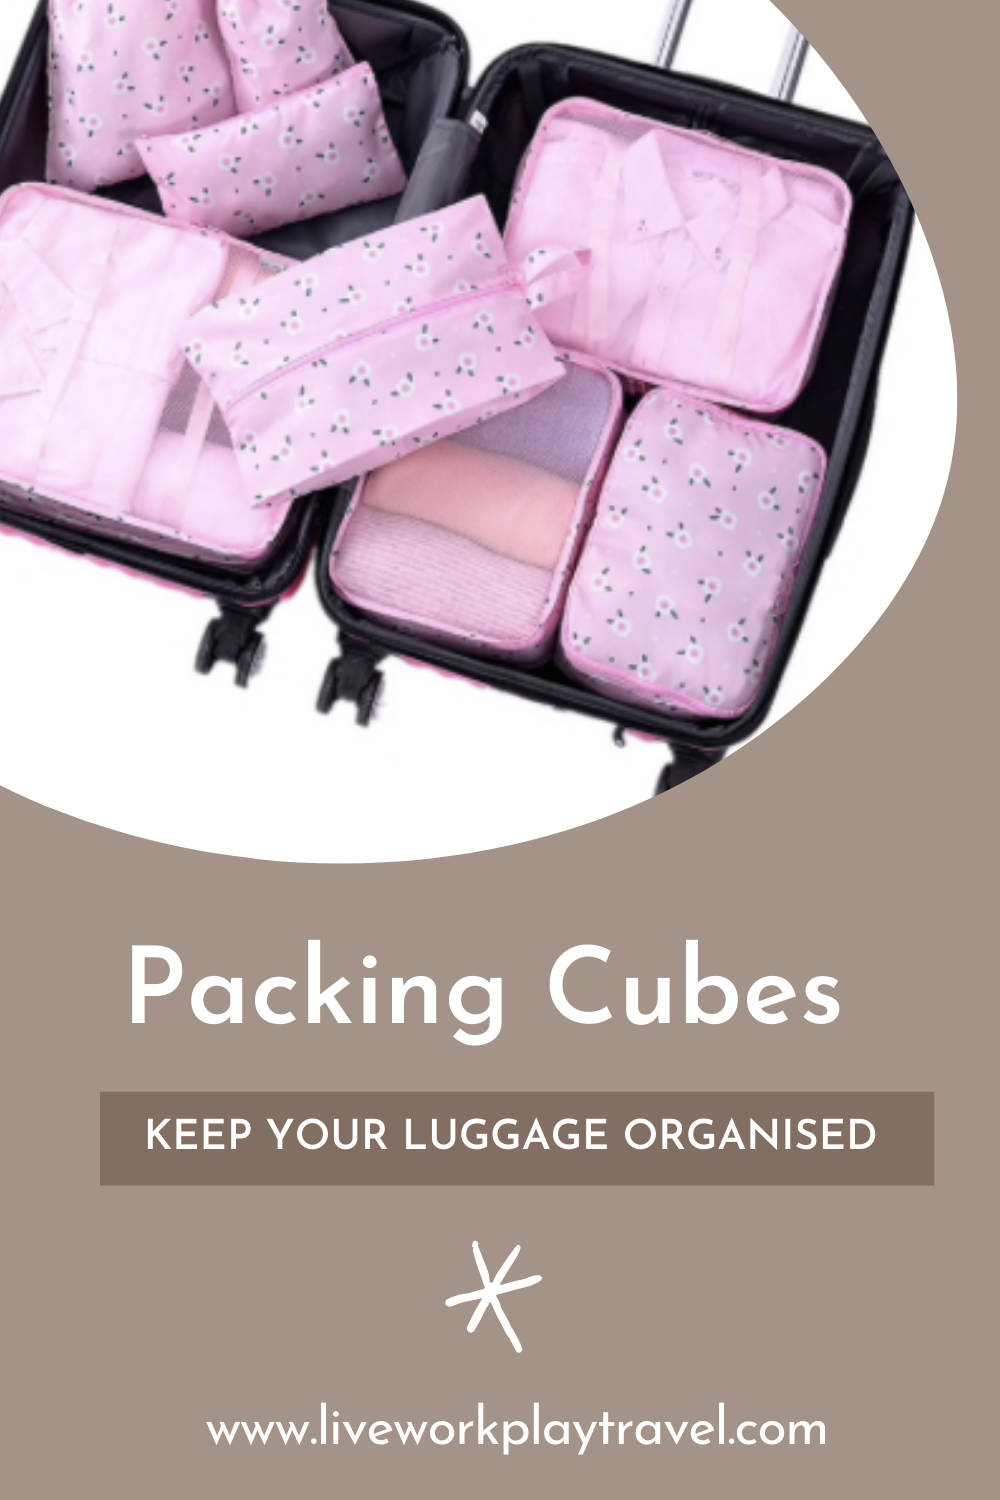 Packing Cubes Make Clothes Tidy In A Suitcase.